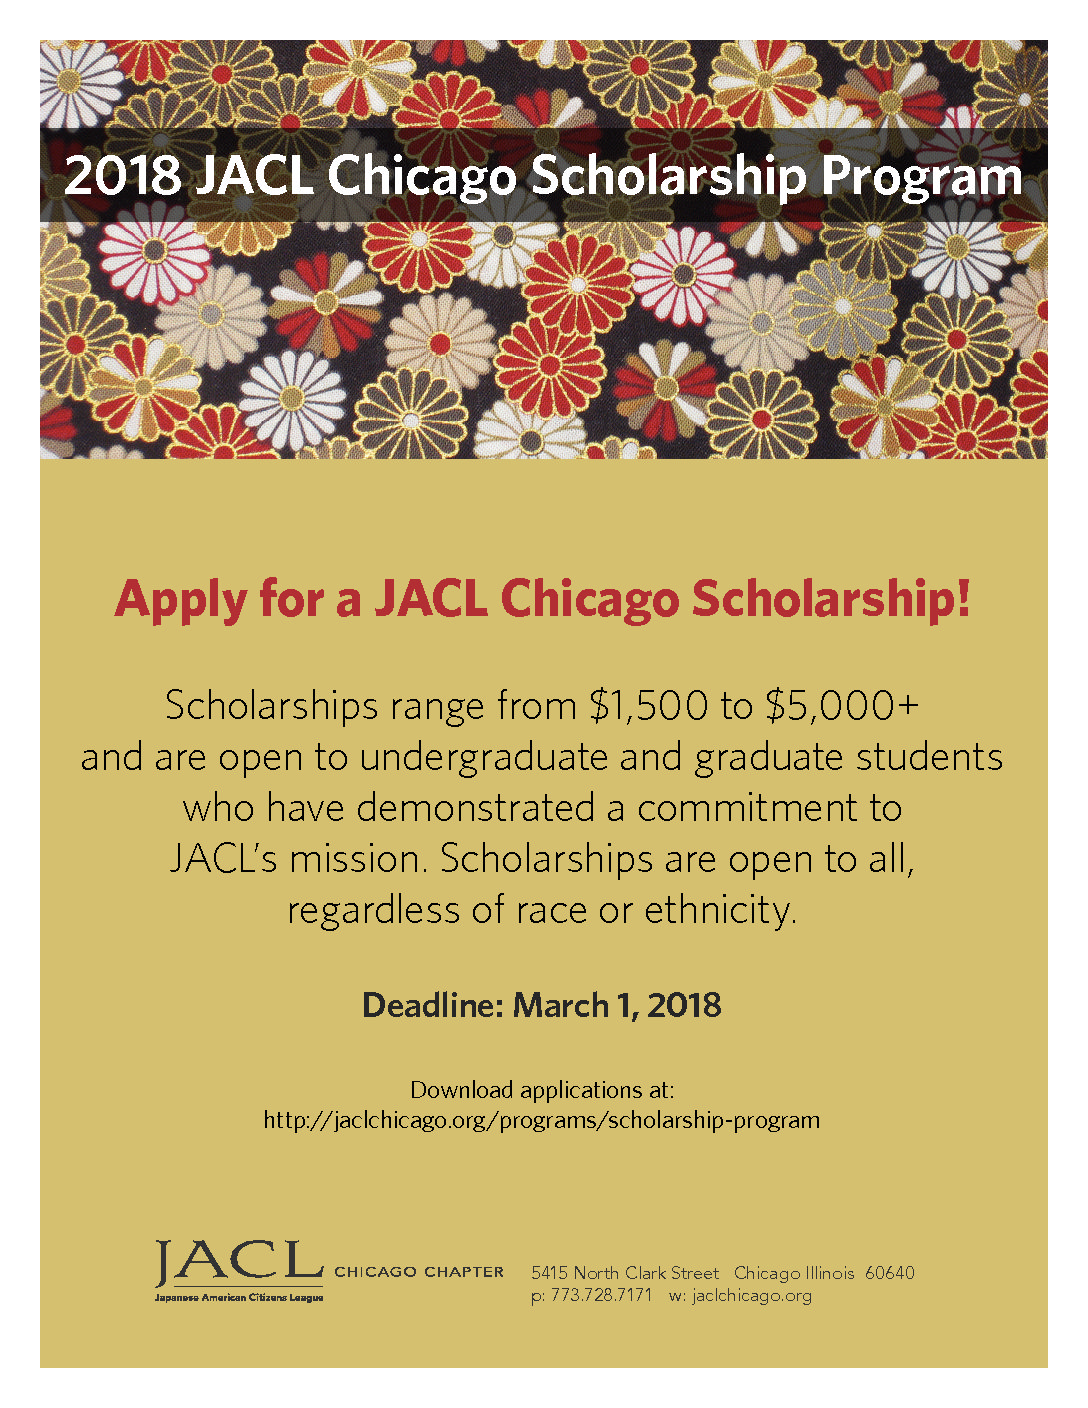 2018 Scholarship Application Available!